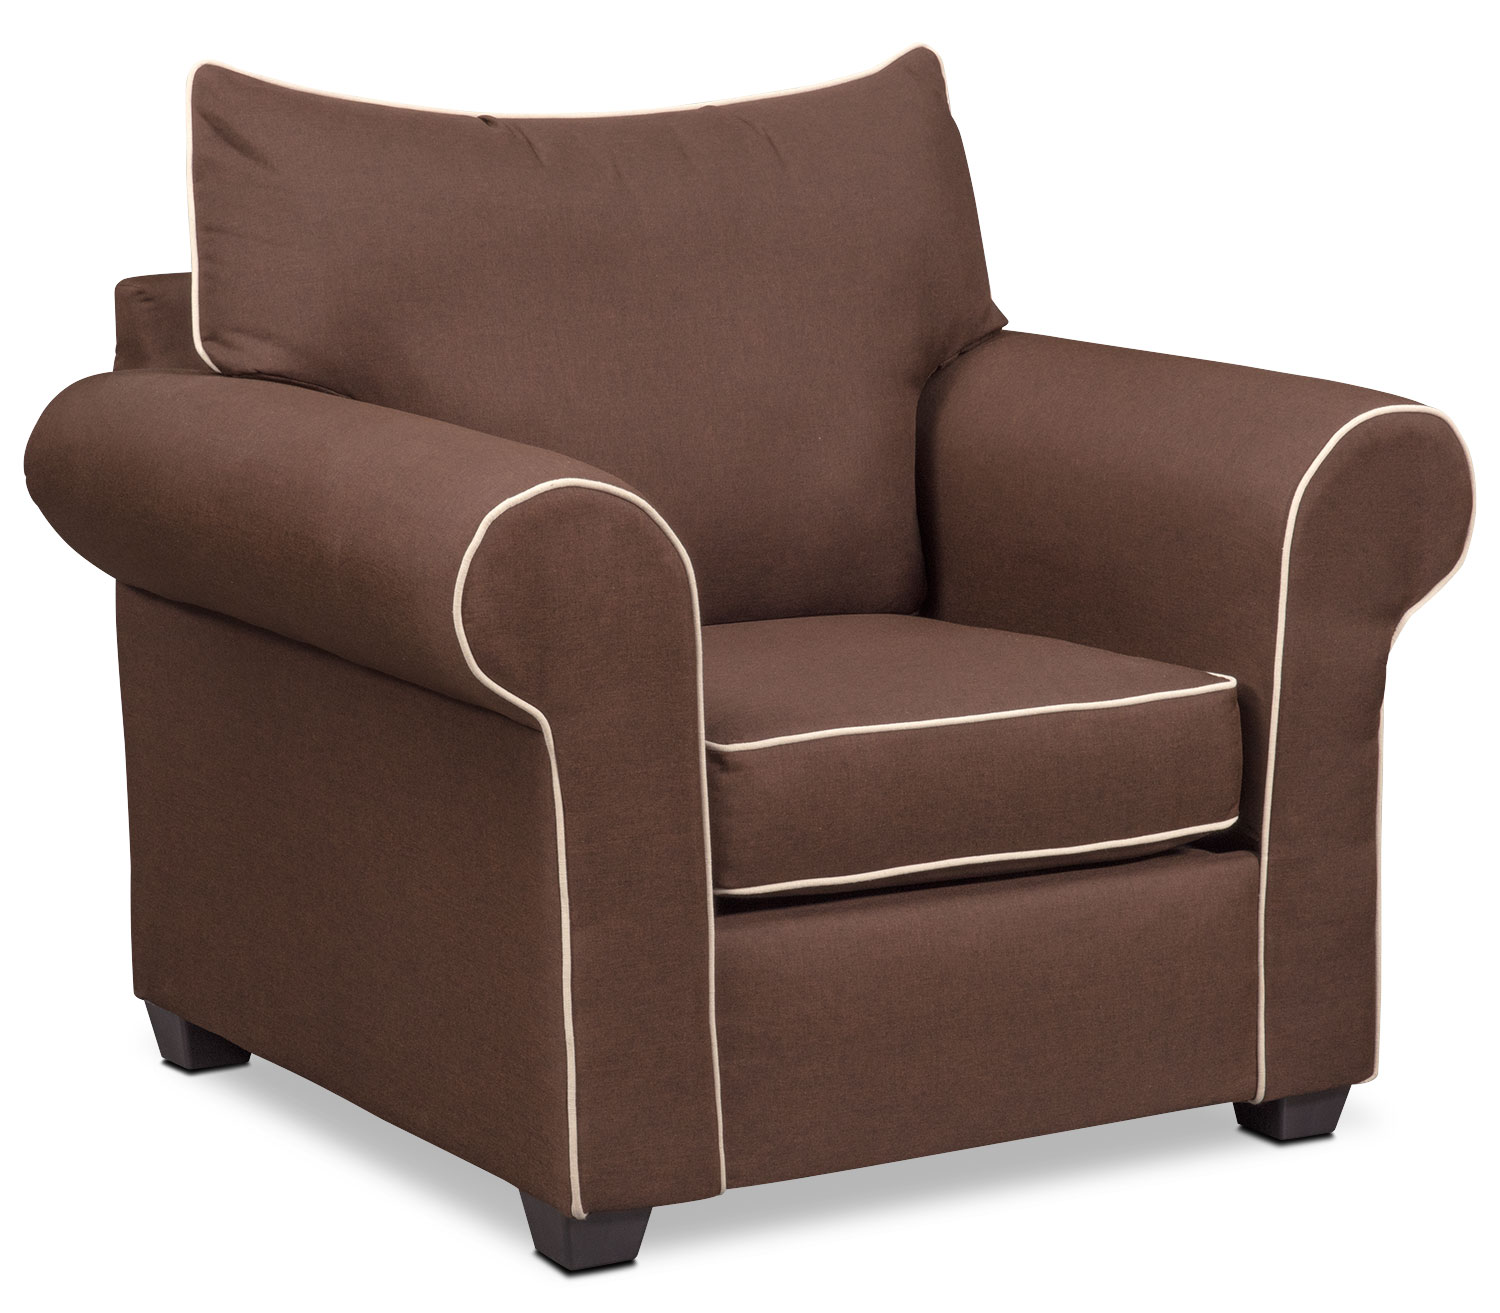 Living Room Furniture - Carla Chair - Chocolate